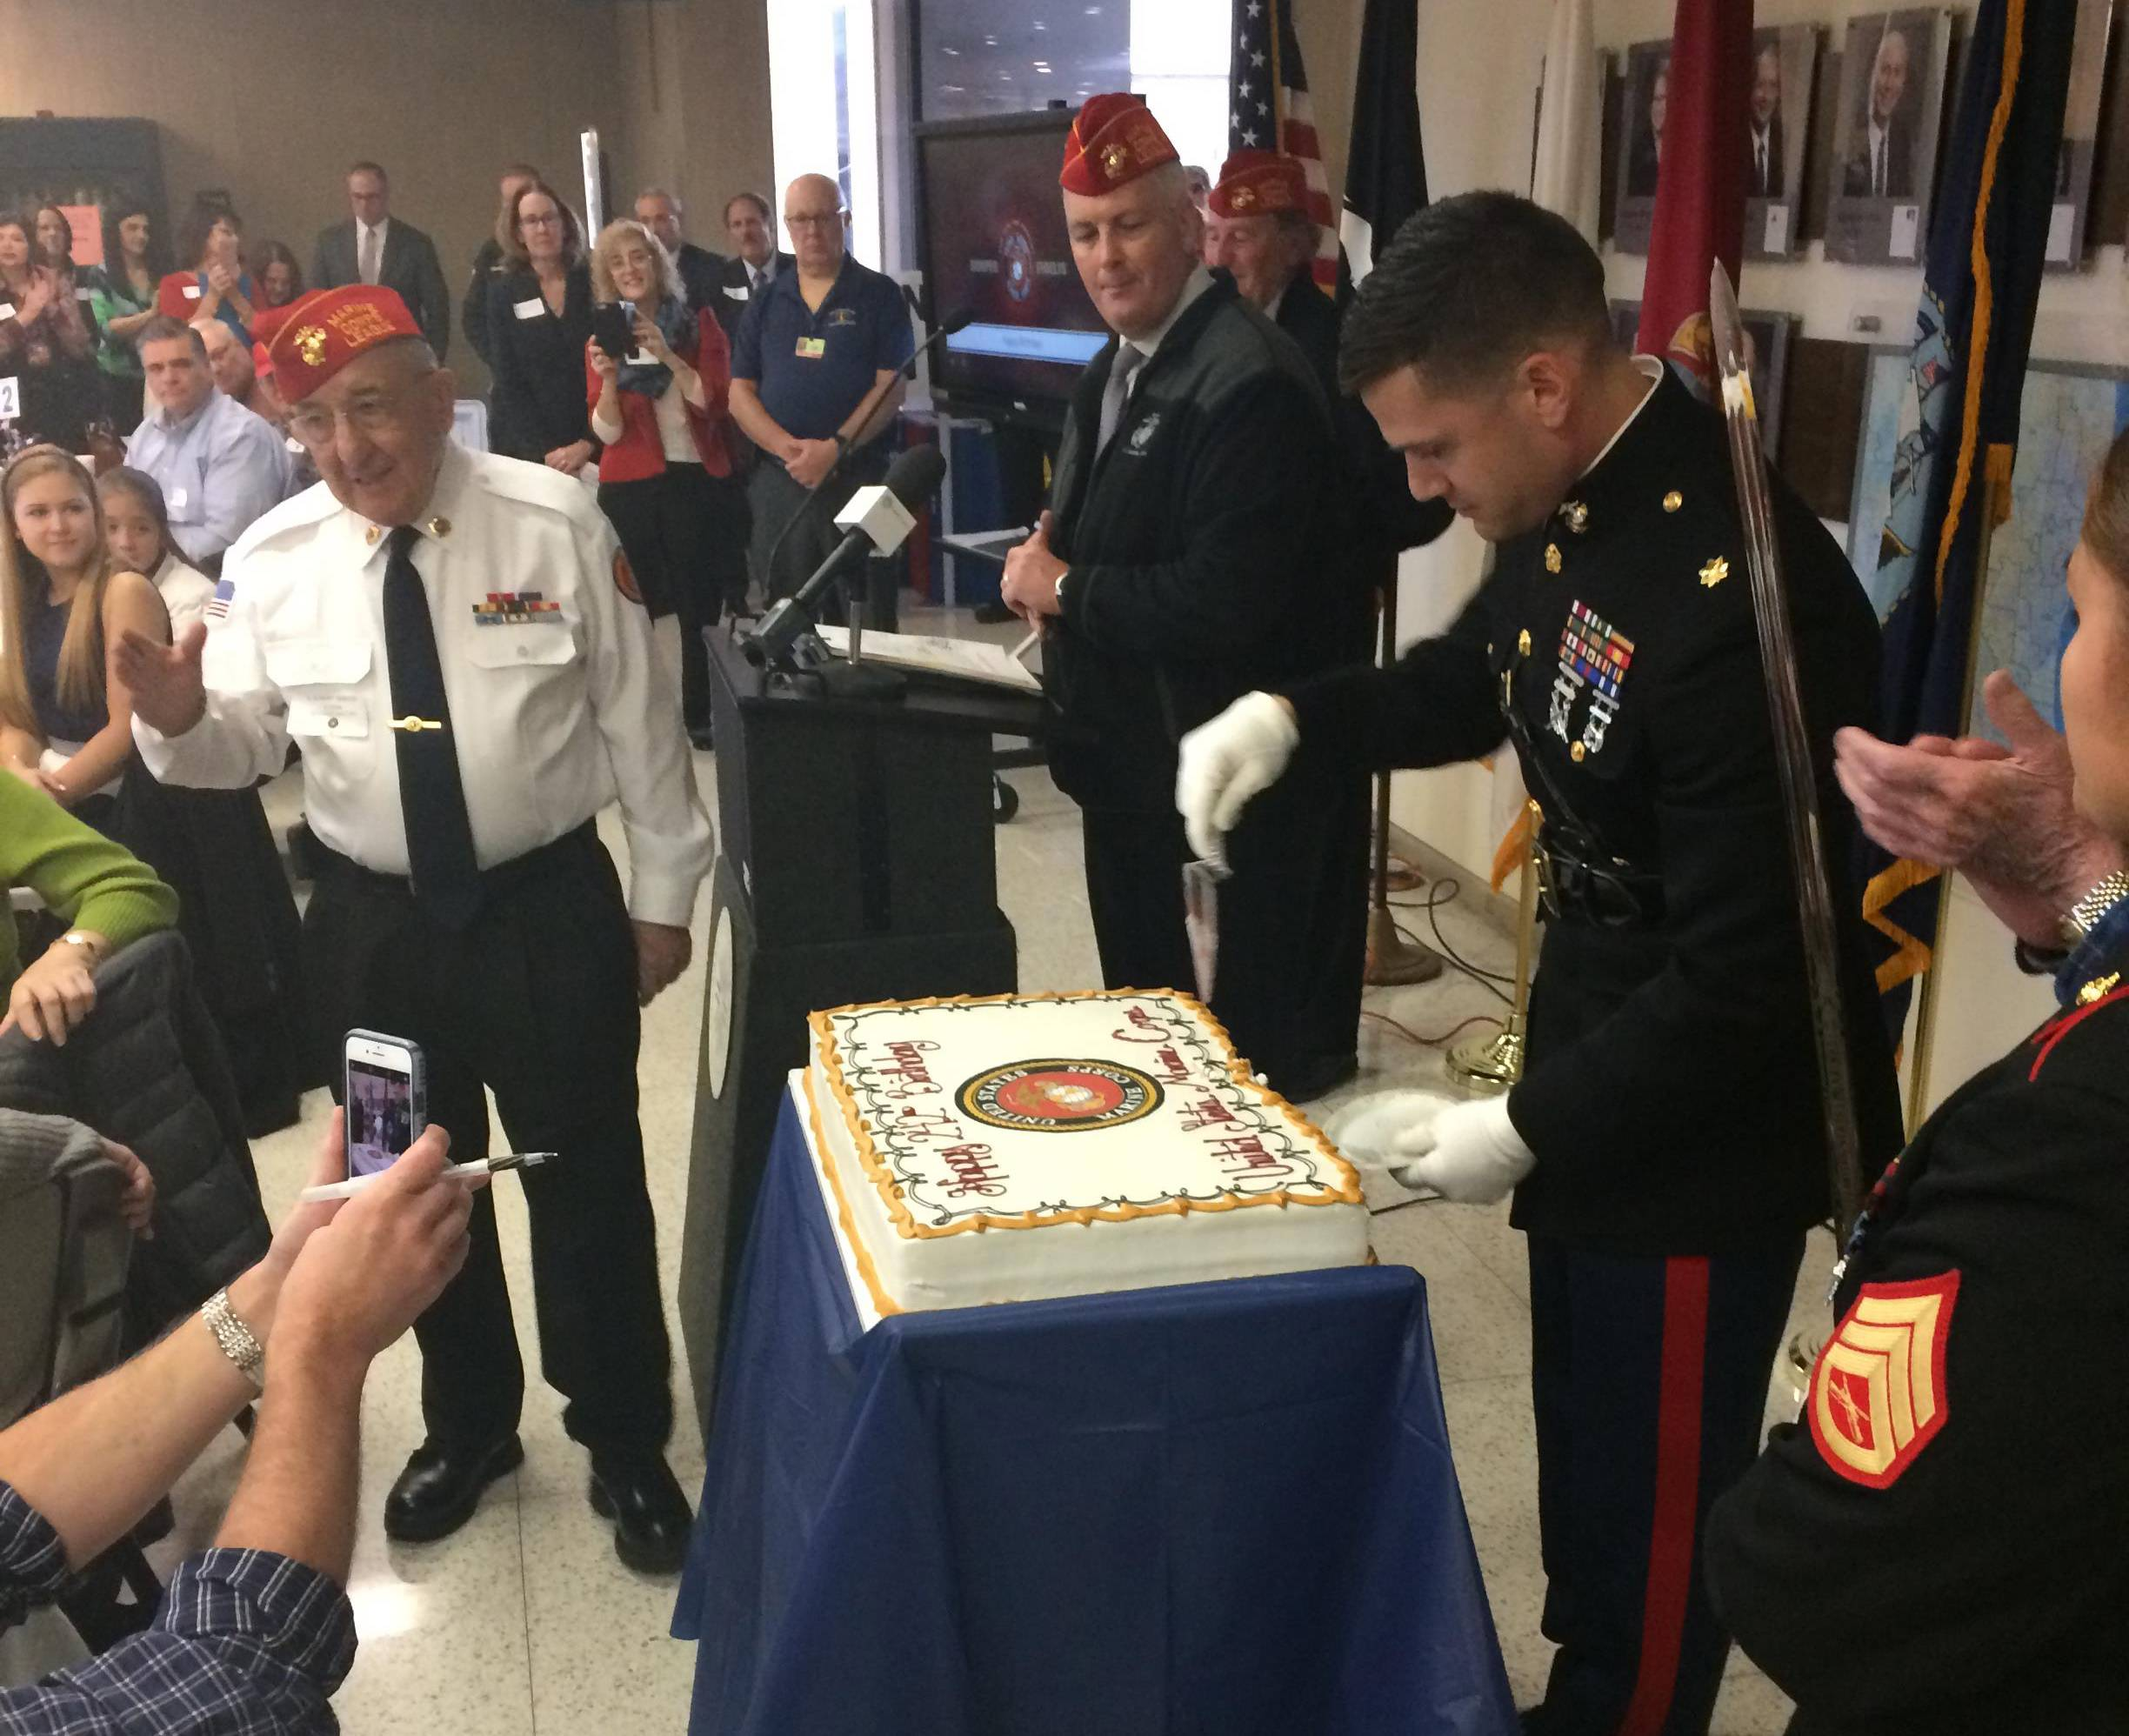 A Marine cuts a birthday cake Friday in honor of Veterans Day at the Lake County courthouse in Waukegan.